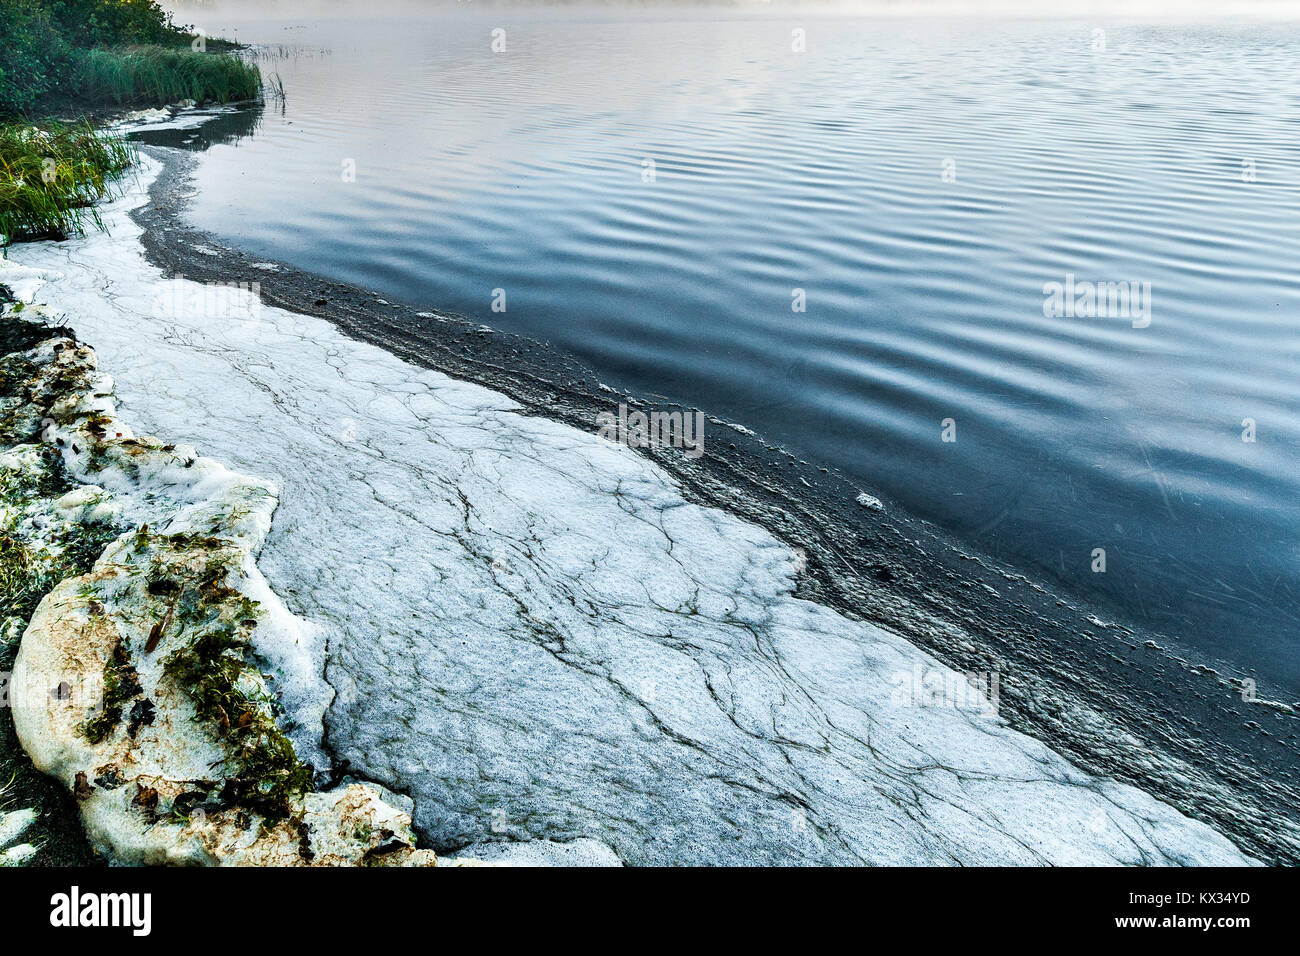 Pollution foam on the shore of a lake in Quebec, Canada - Stock Image